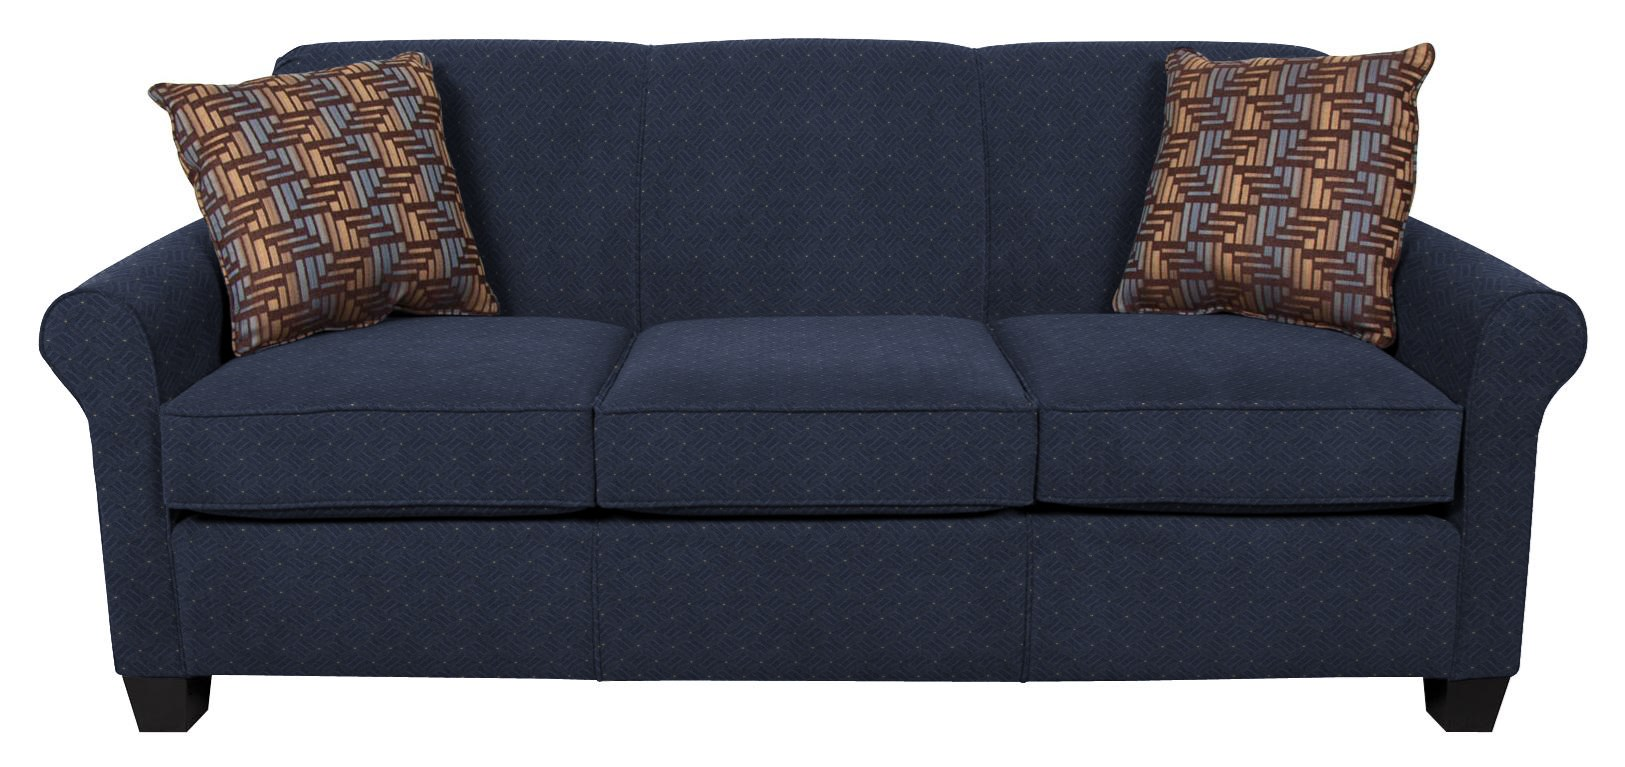 Angie  Sleeper Sofa by England at Lapeer Furniture & Mattress Center